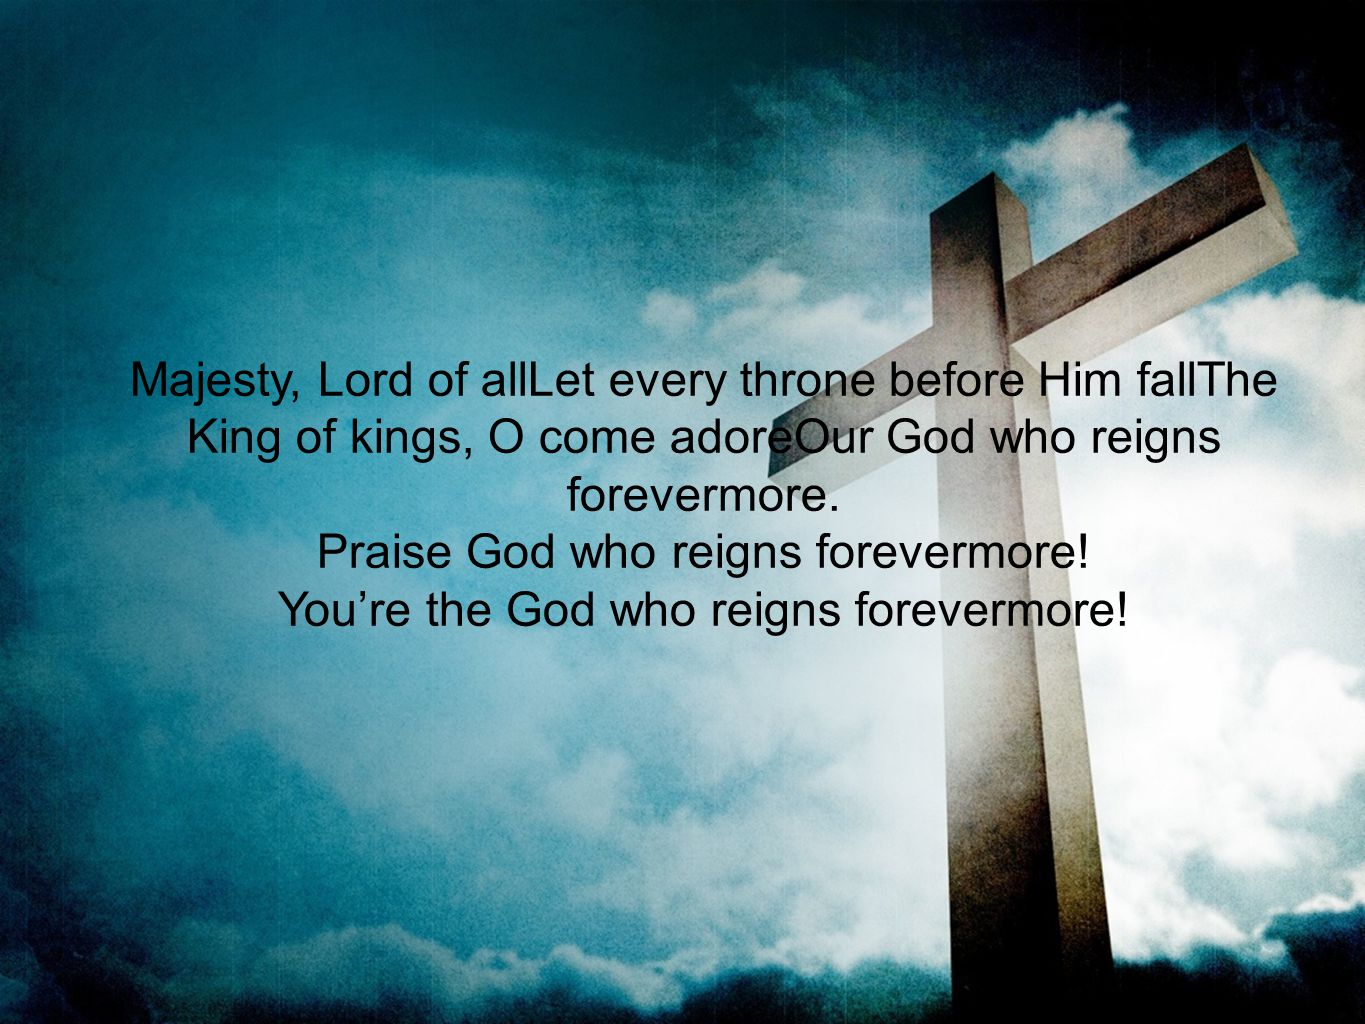 Praise God who reigns forevermore!